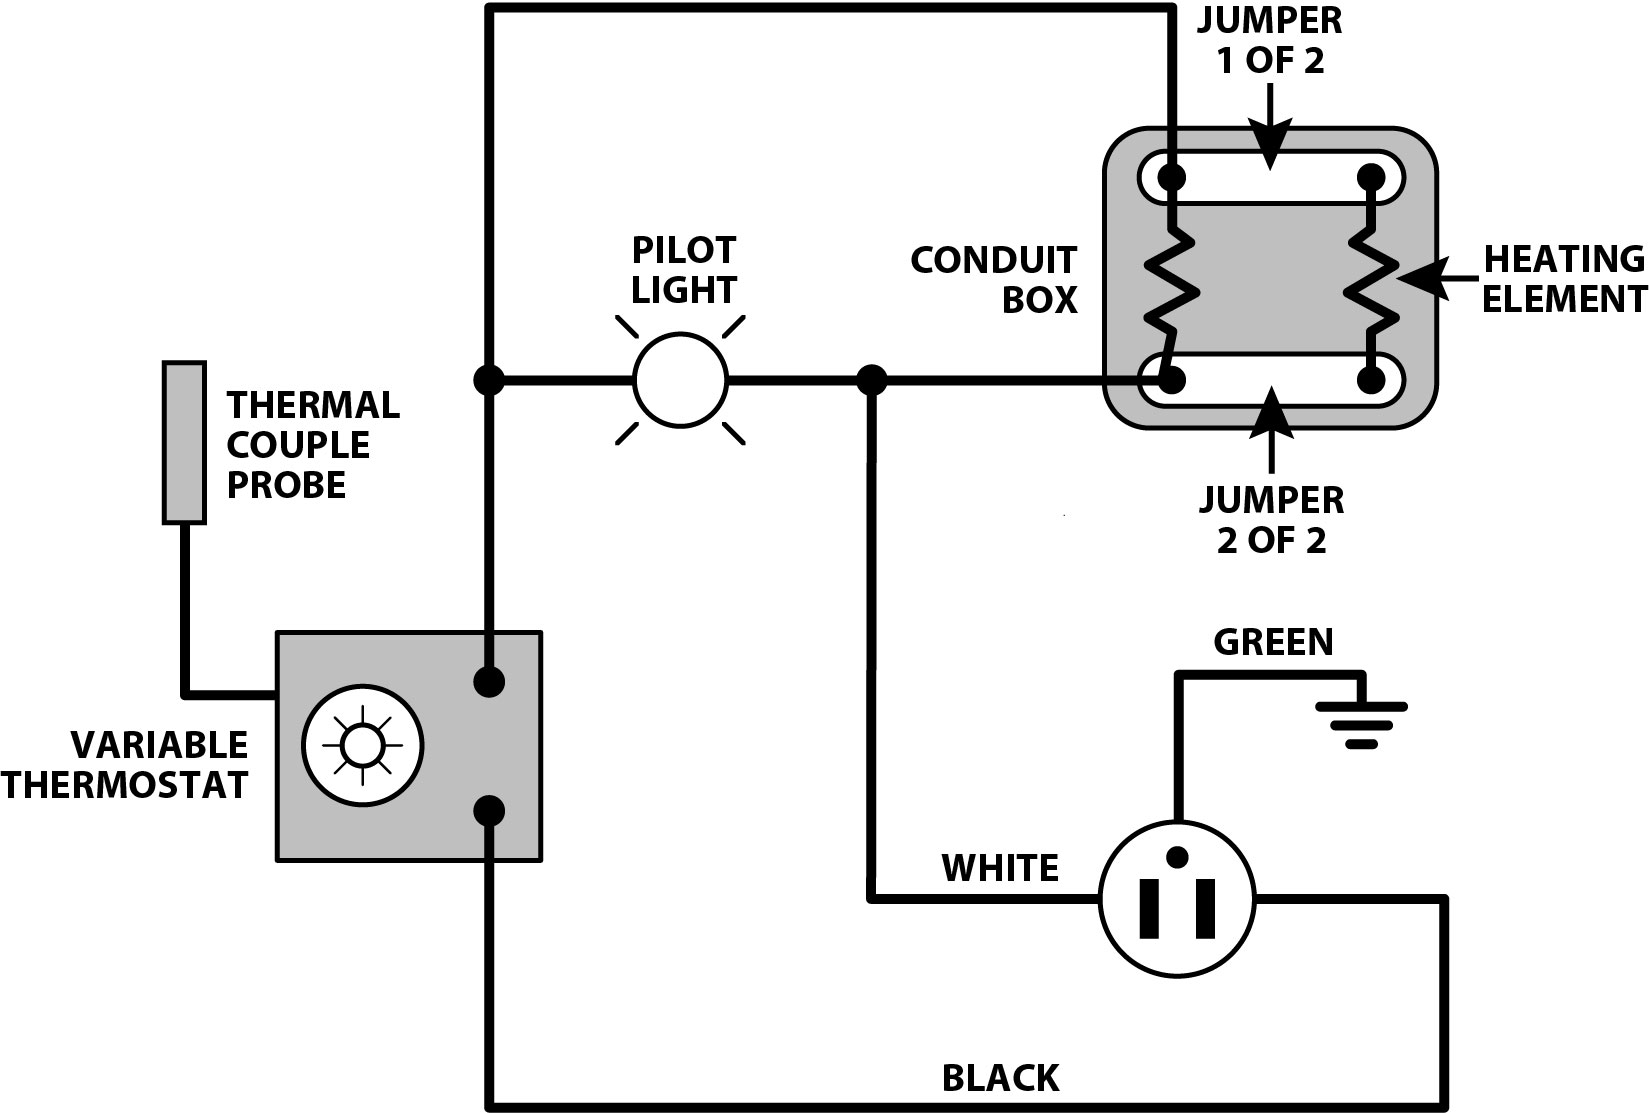 Wiring Diagram For A 120 Volt Thermostat on photo cell wiring diagram